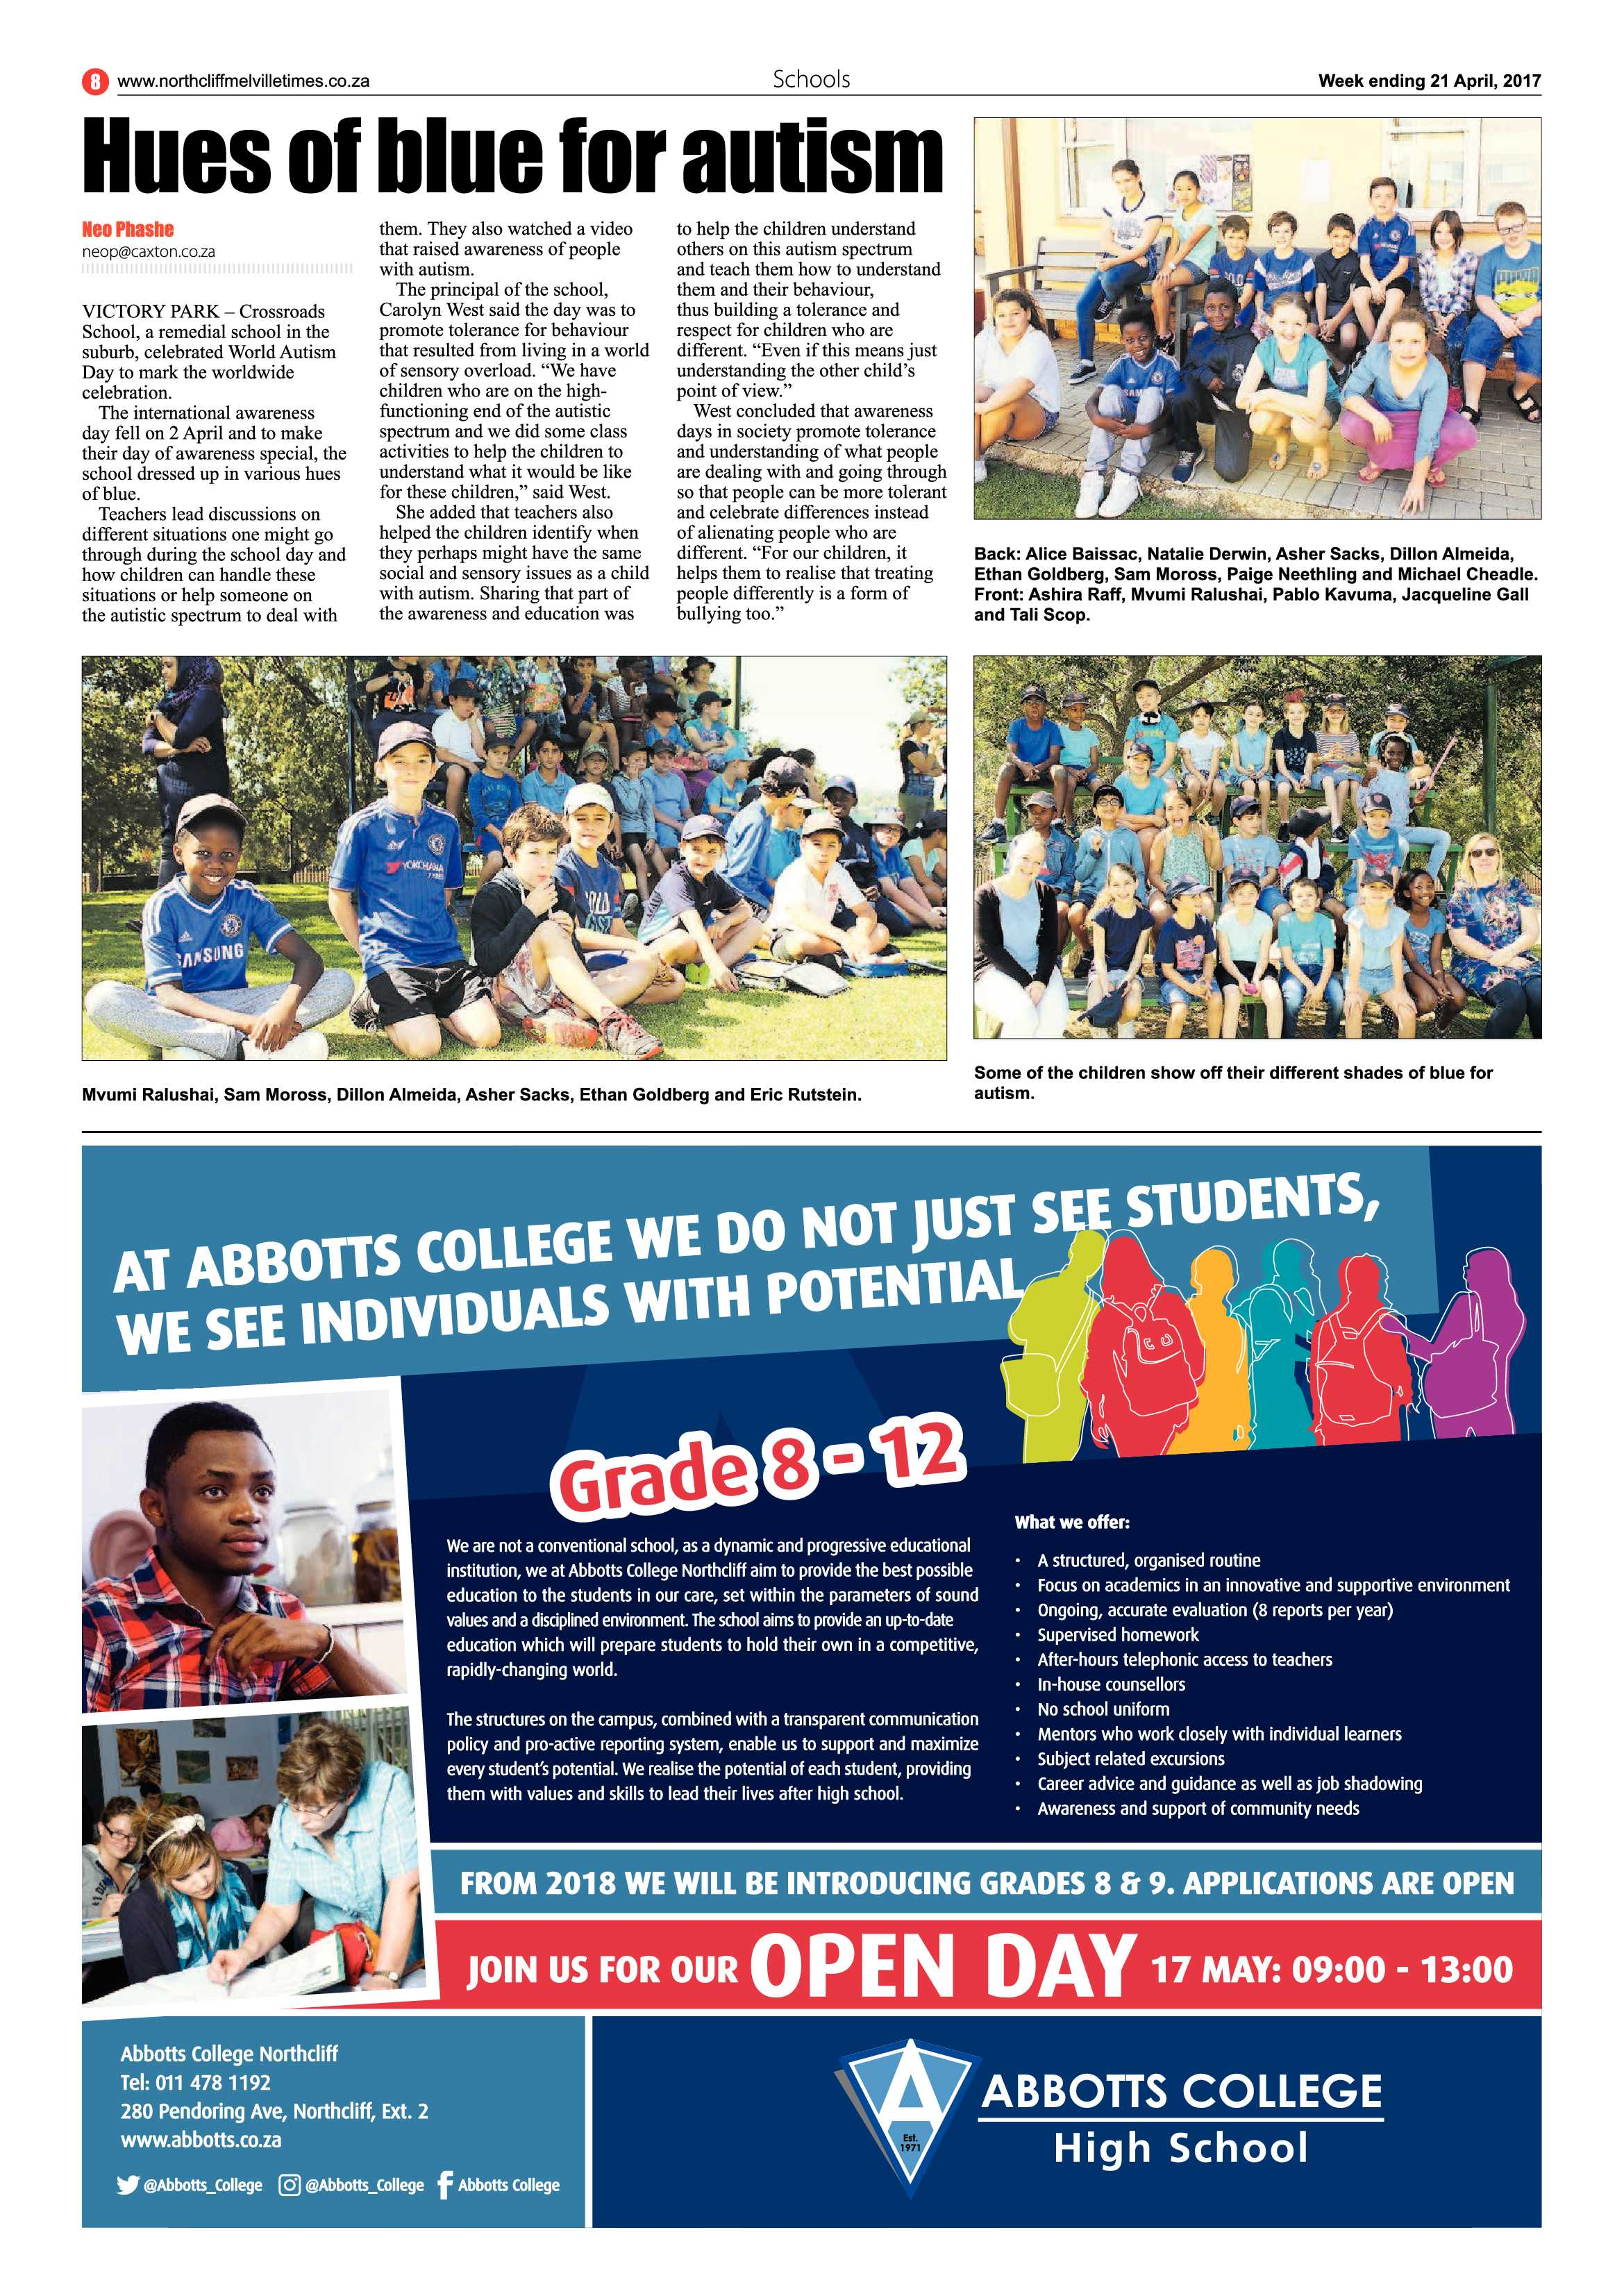 northcliff-melville-times-21-april-2017-epapers-page-8